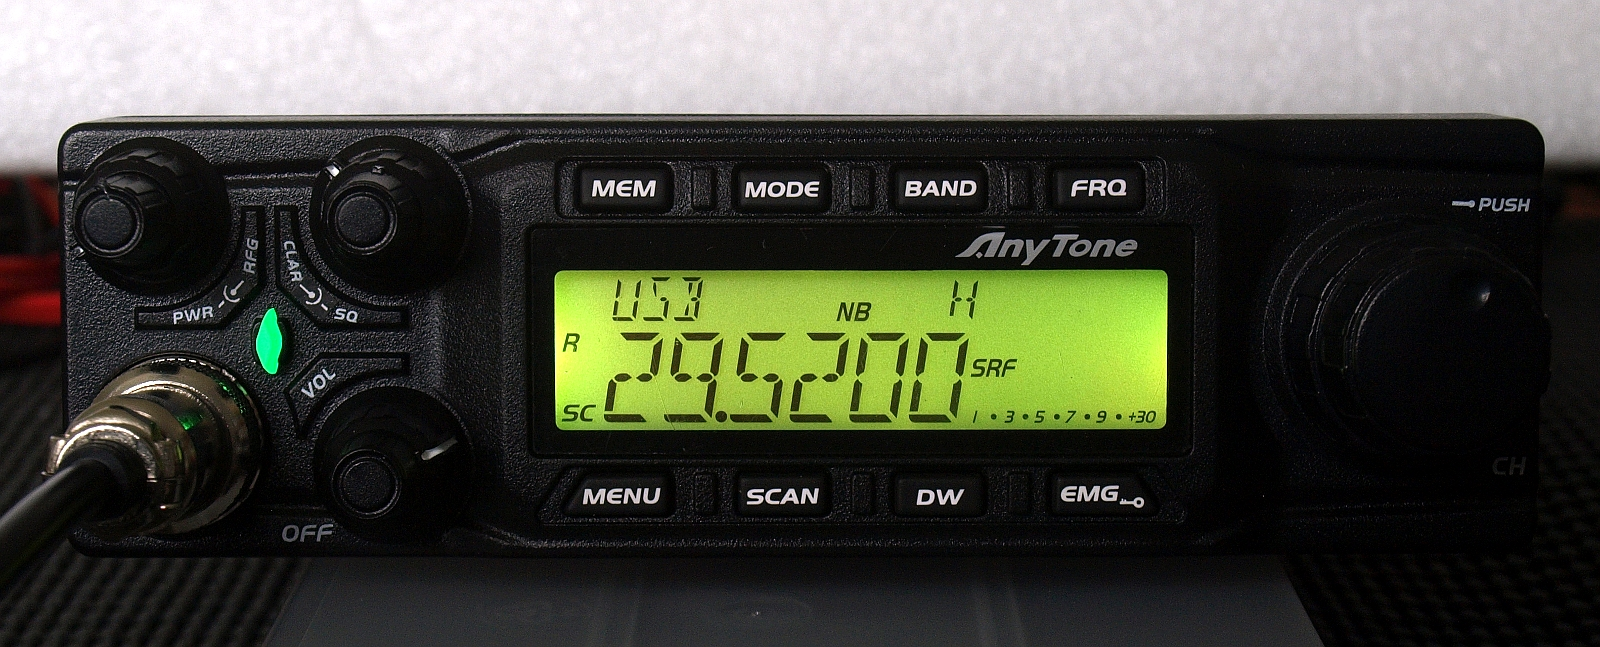 Click here to buy Anytone AT6666 All Mode 10 meter mobile Radio AM FM USB LSB CW PA All Mode! by Anytone.